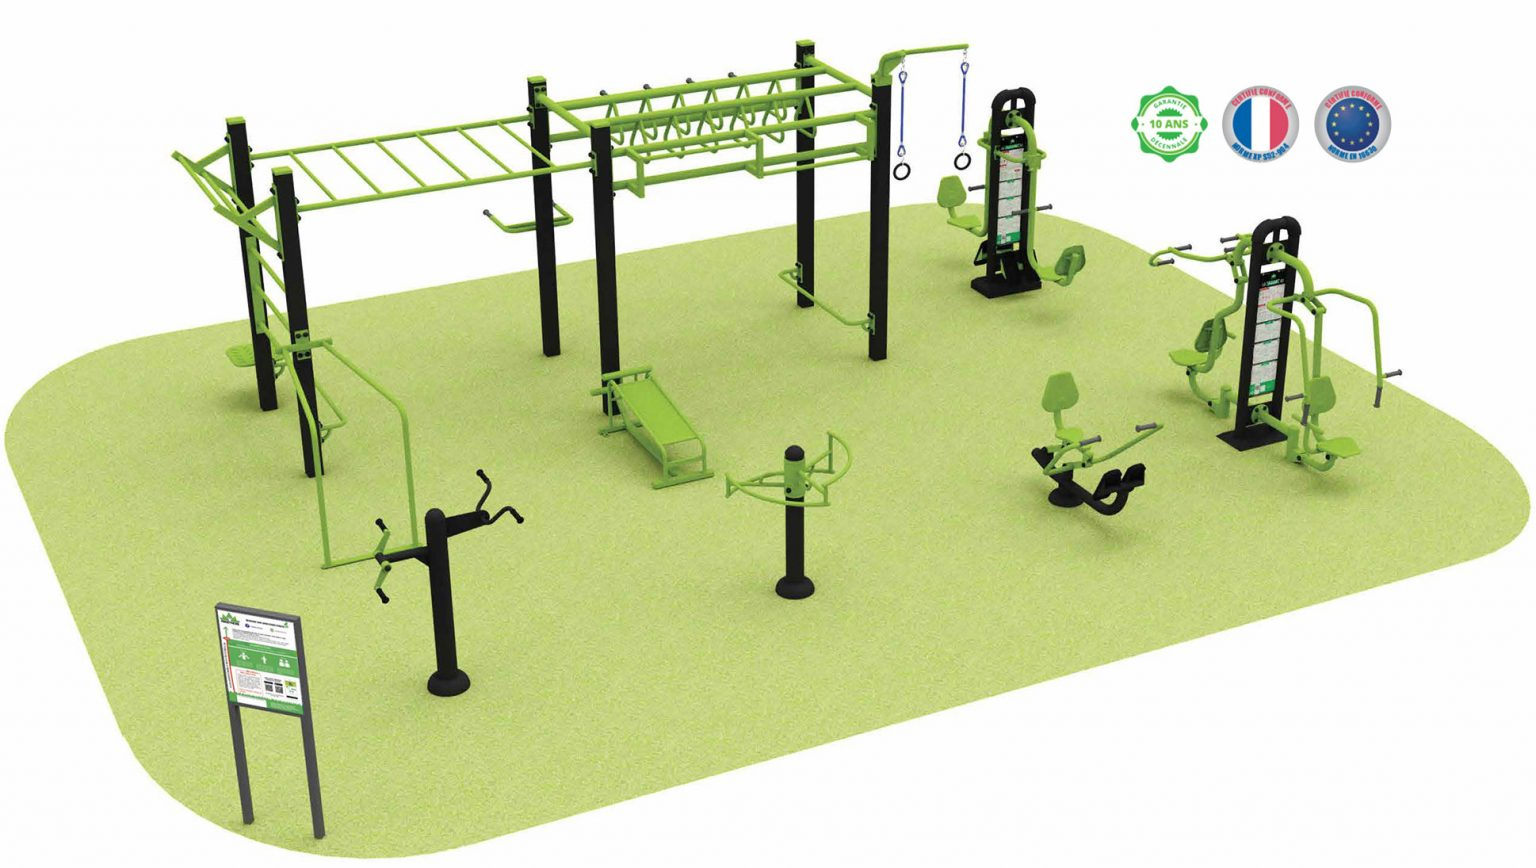 Fitness & Street-Workout : offre complète